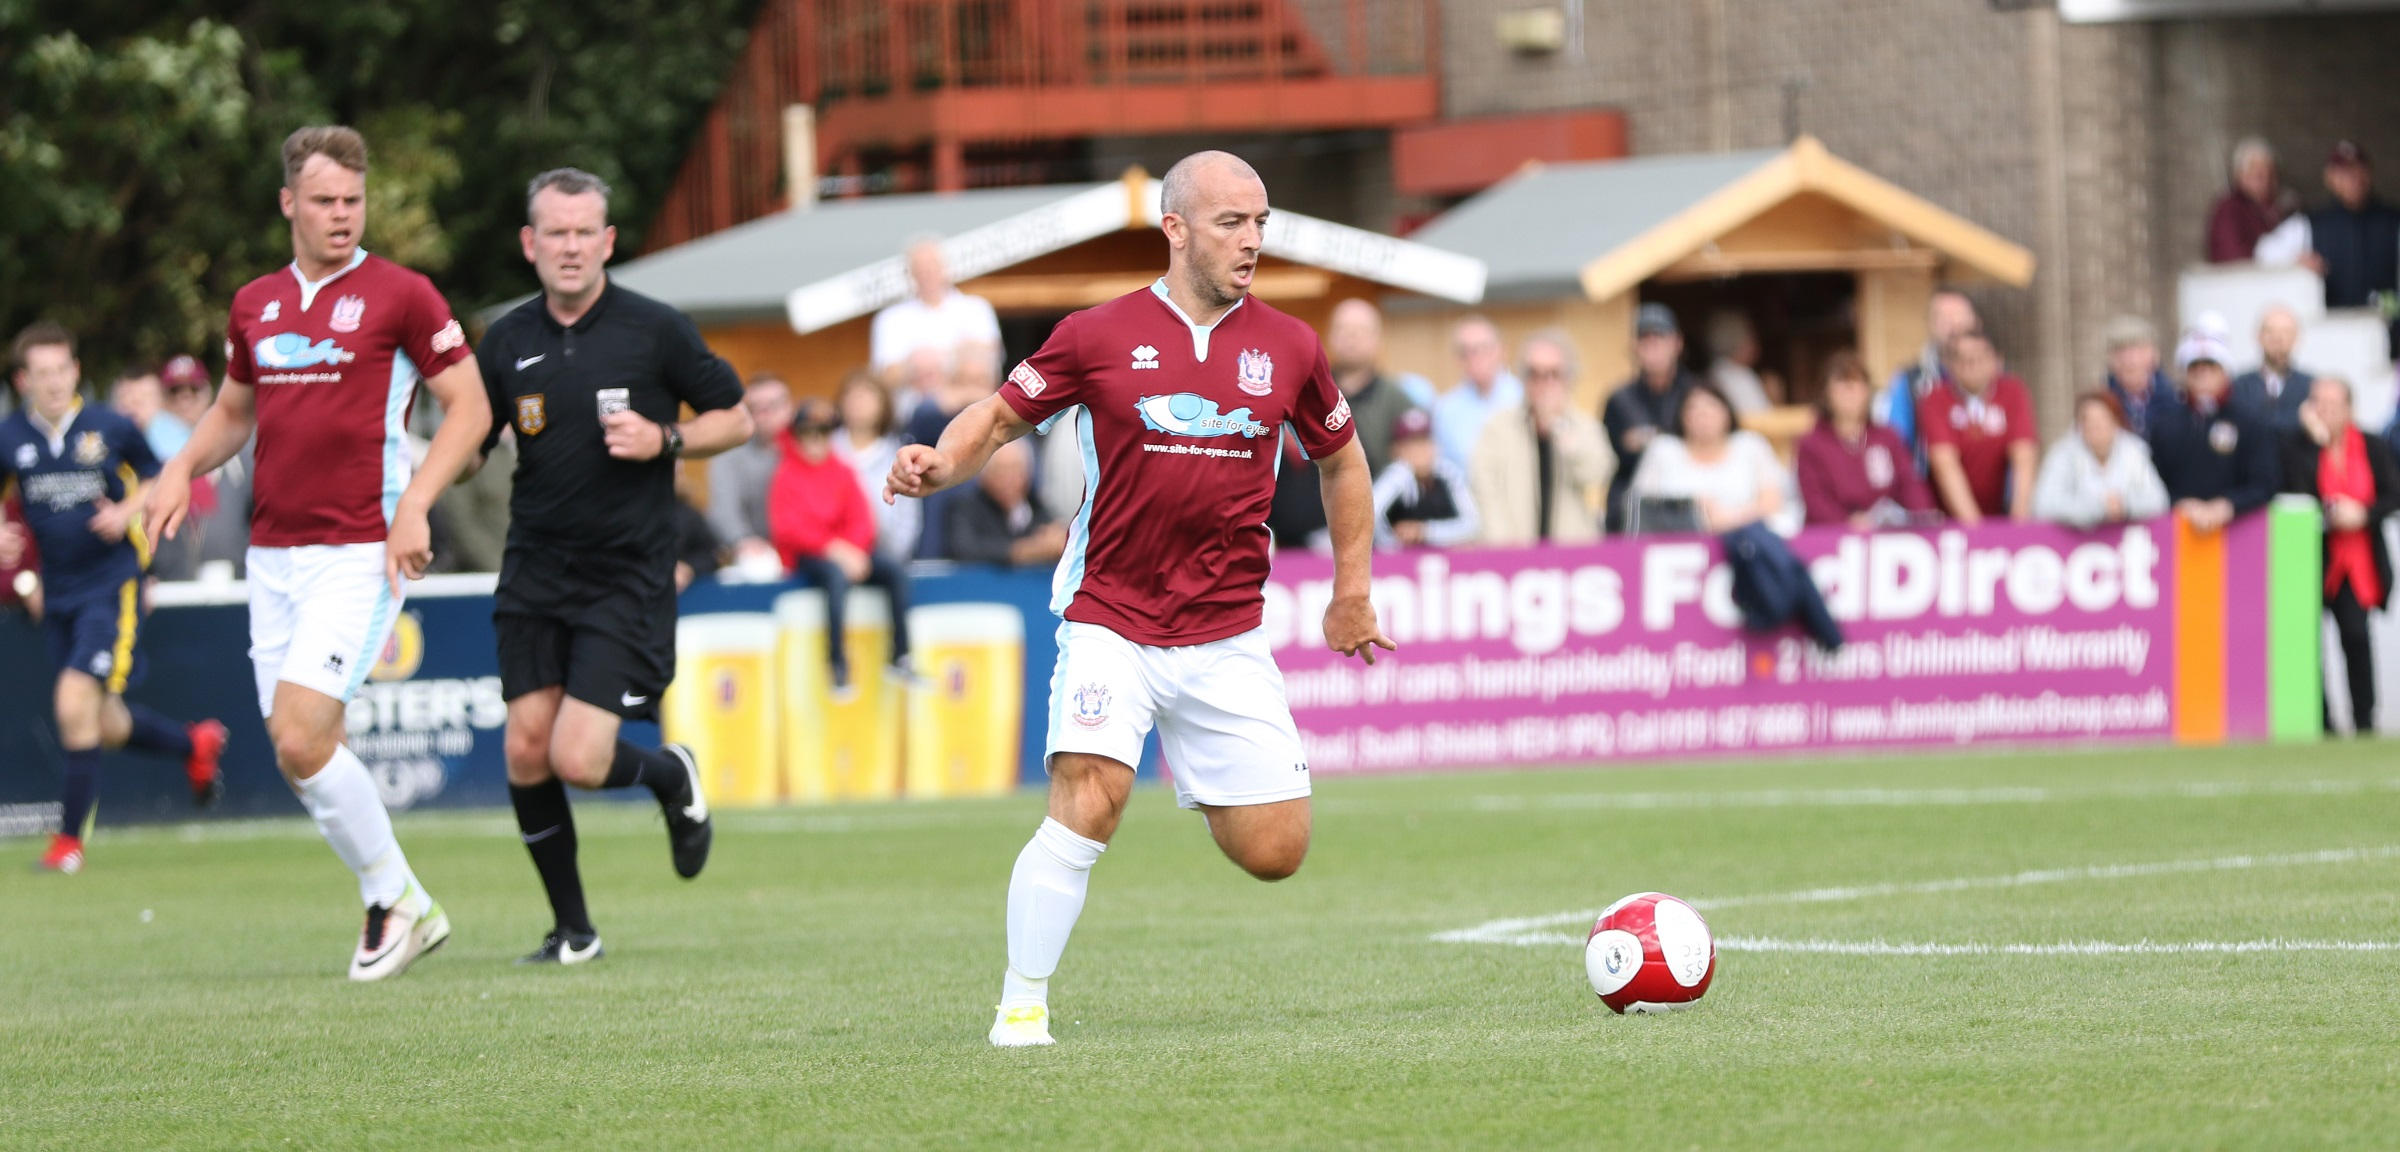 Match Preview: South Shields vs Bamber Bridge